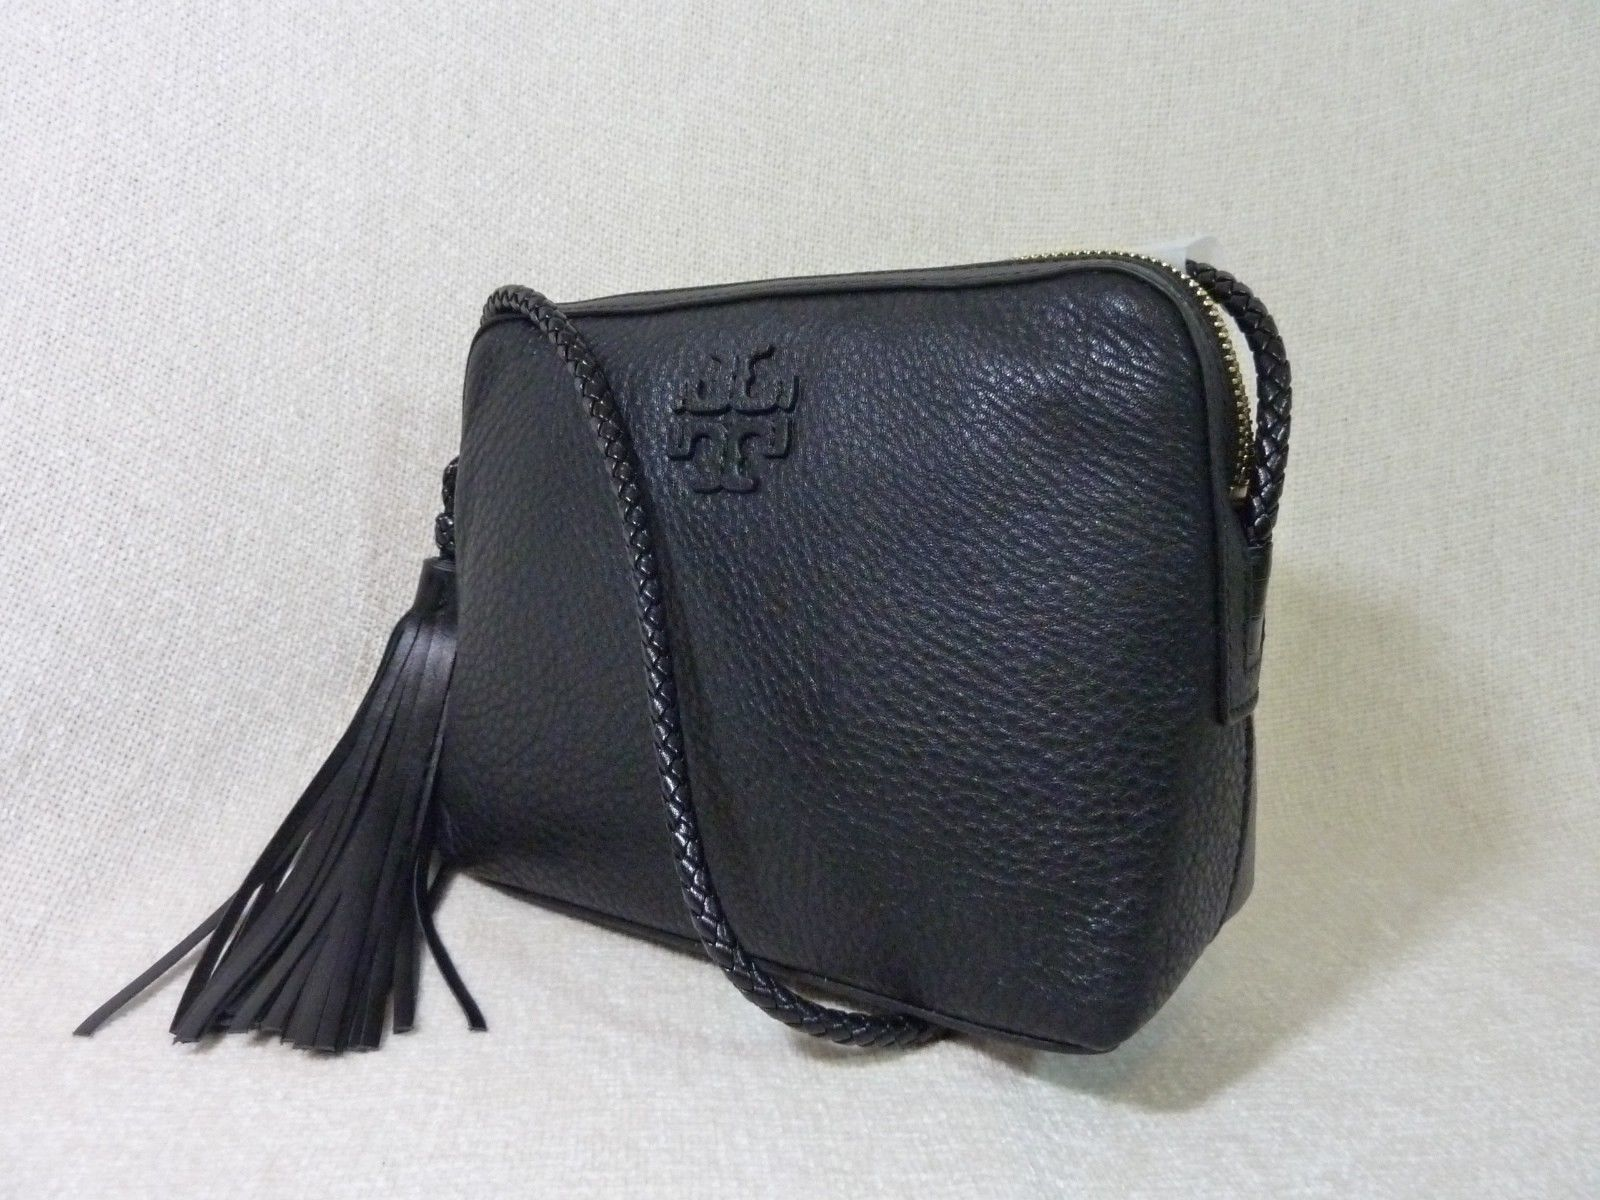 NWT Tory Burch Black Pebbled Leather Taylor Camera Cross Body Bag $350